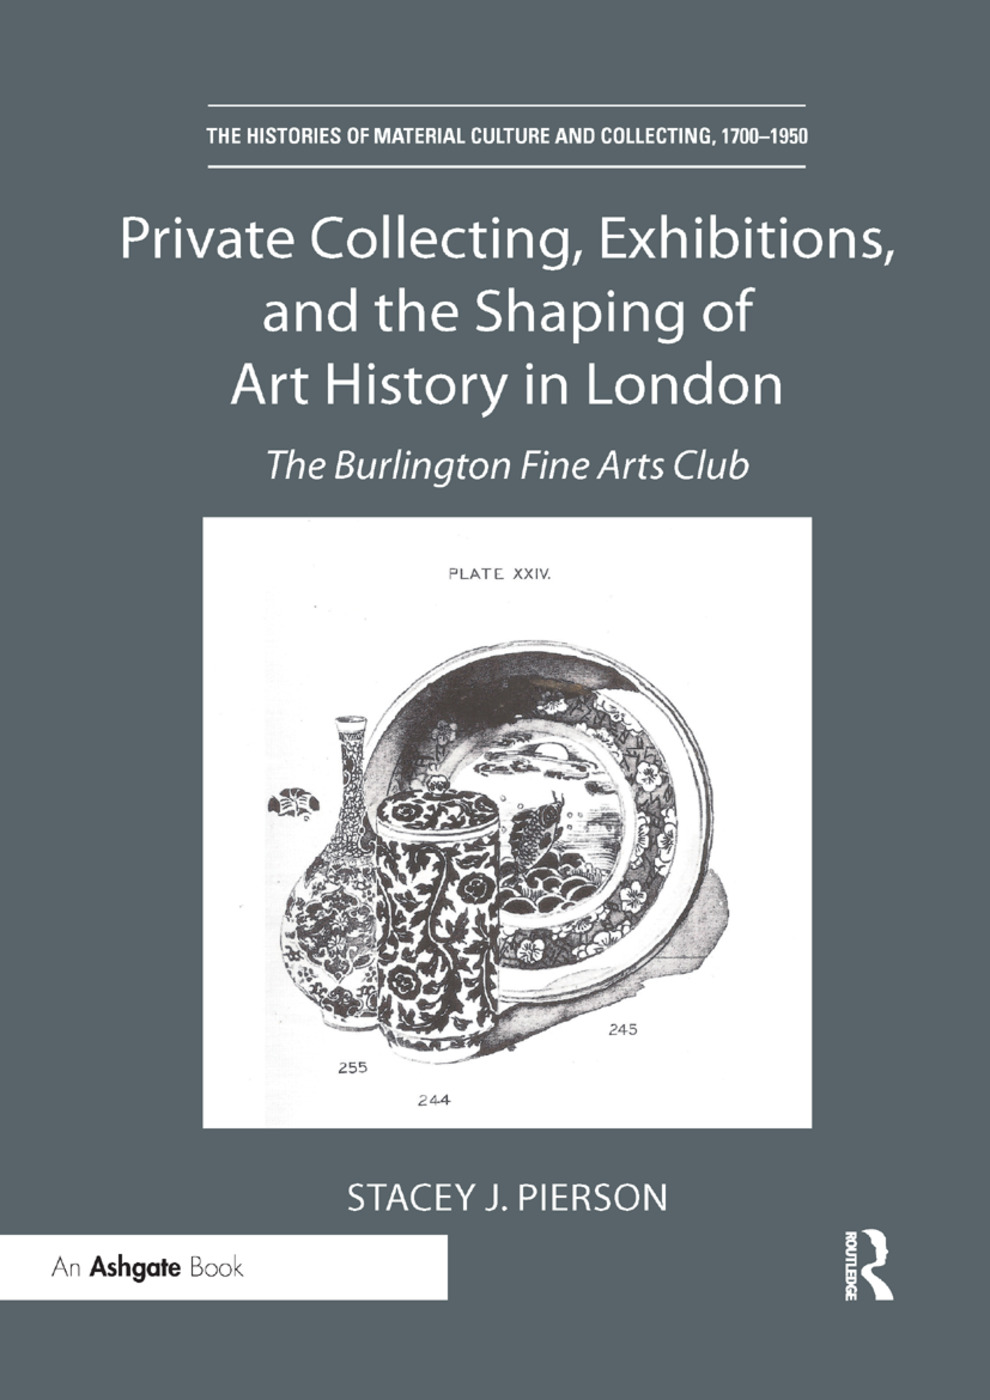 Private Collecting, Exhibitions, and the Shaping of Art History in London